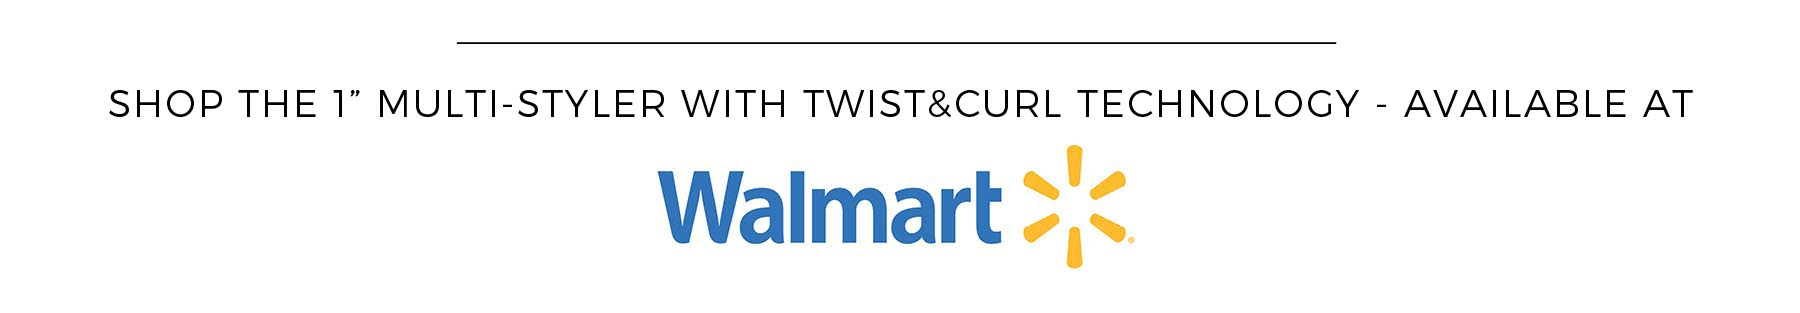 SHOP THE 1 INCH MULTI-STYLER WITH TWIST&CURL TECHNOLOGY - AVAILABLE AT WALMART